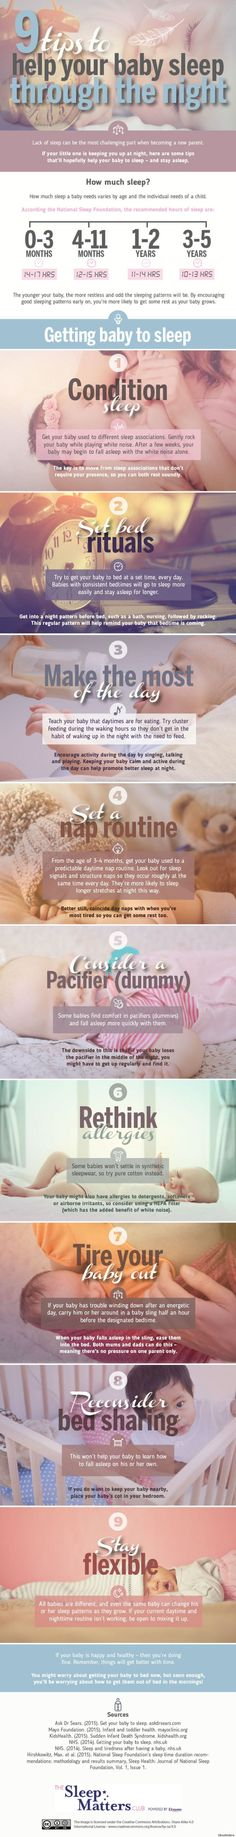 How to help your baby sleep through the night. Every tired parent needs these tips!